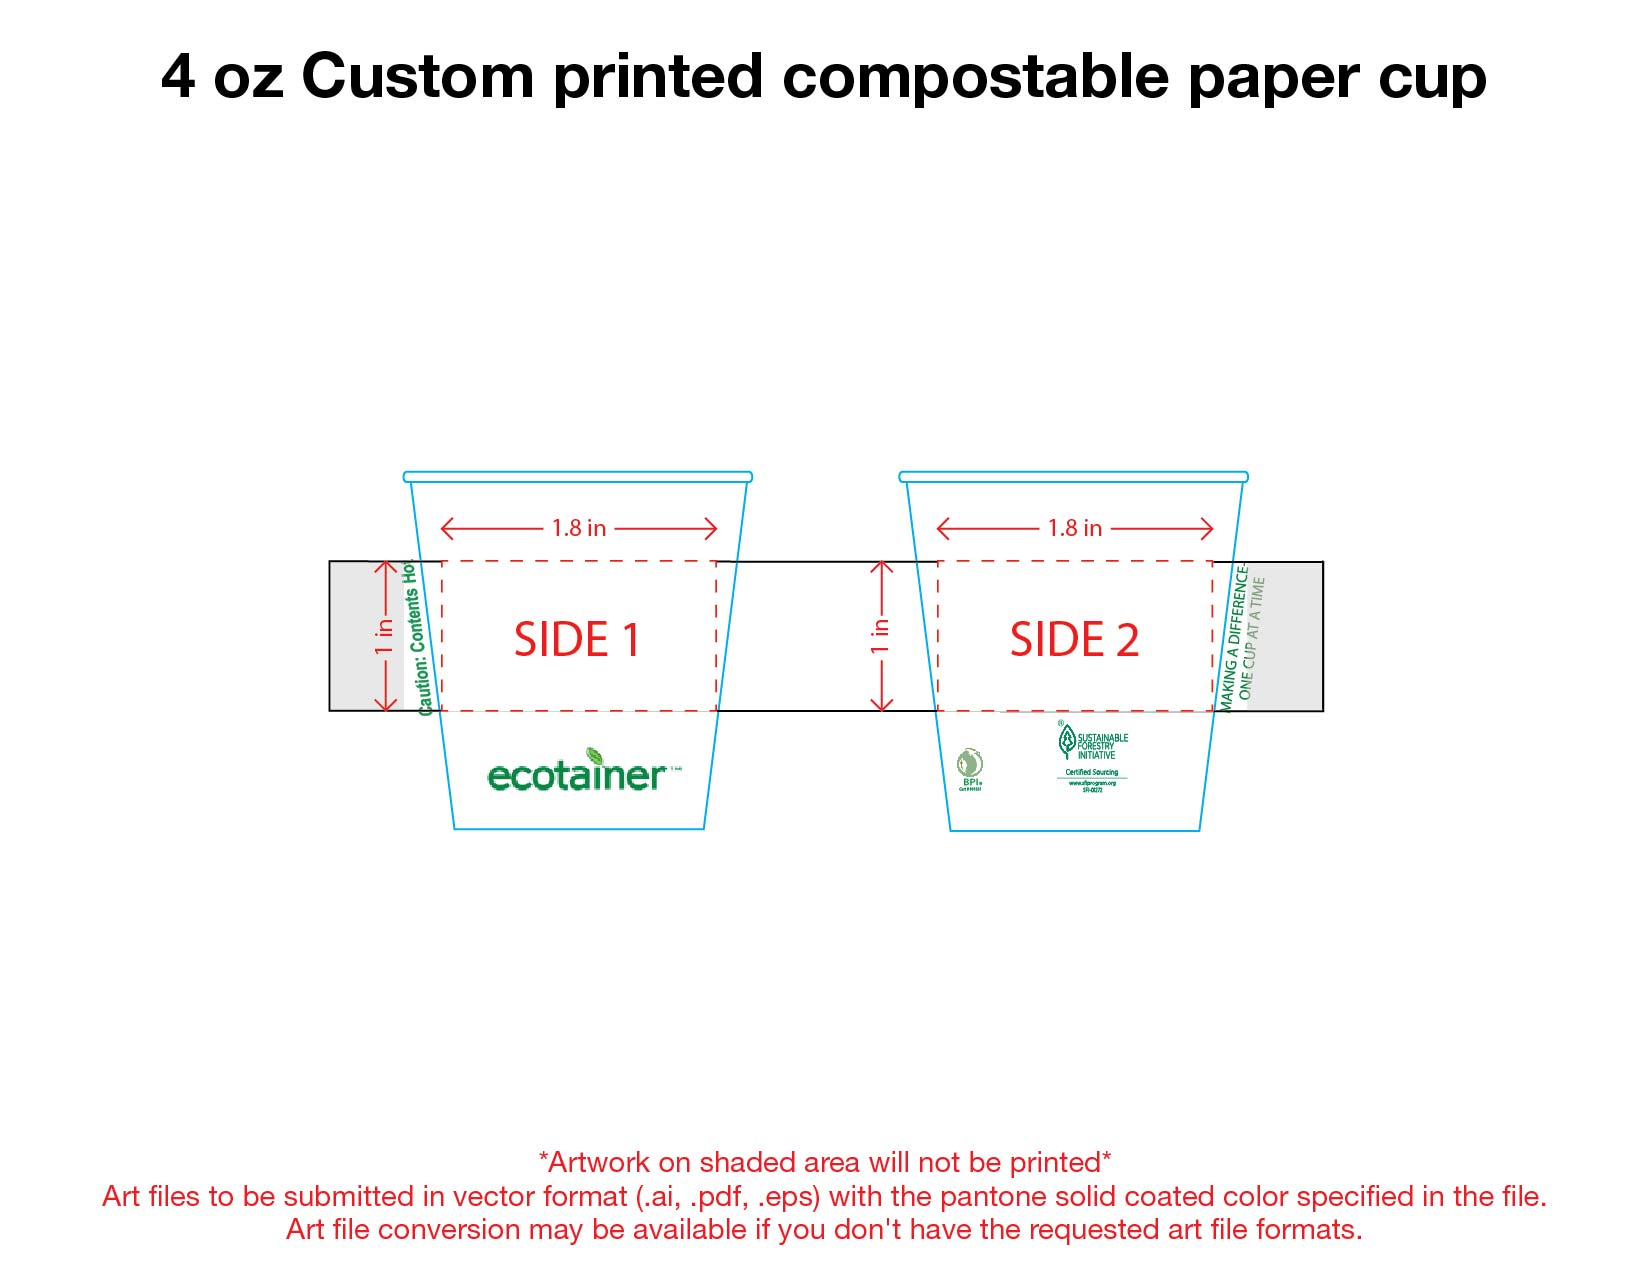 4 oz. Custom Printed Compostable Paper